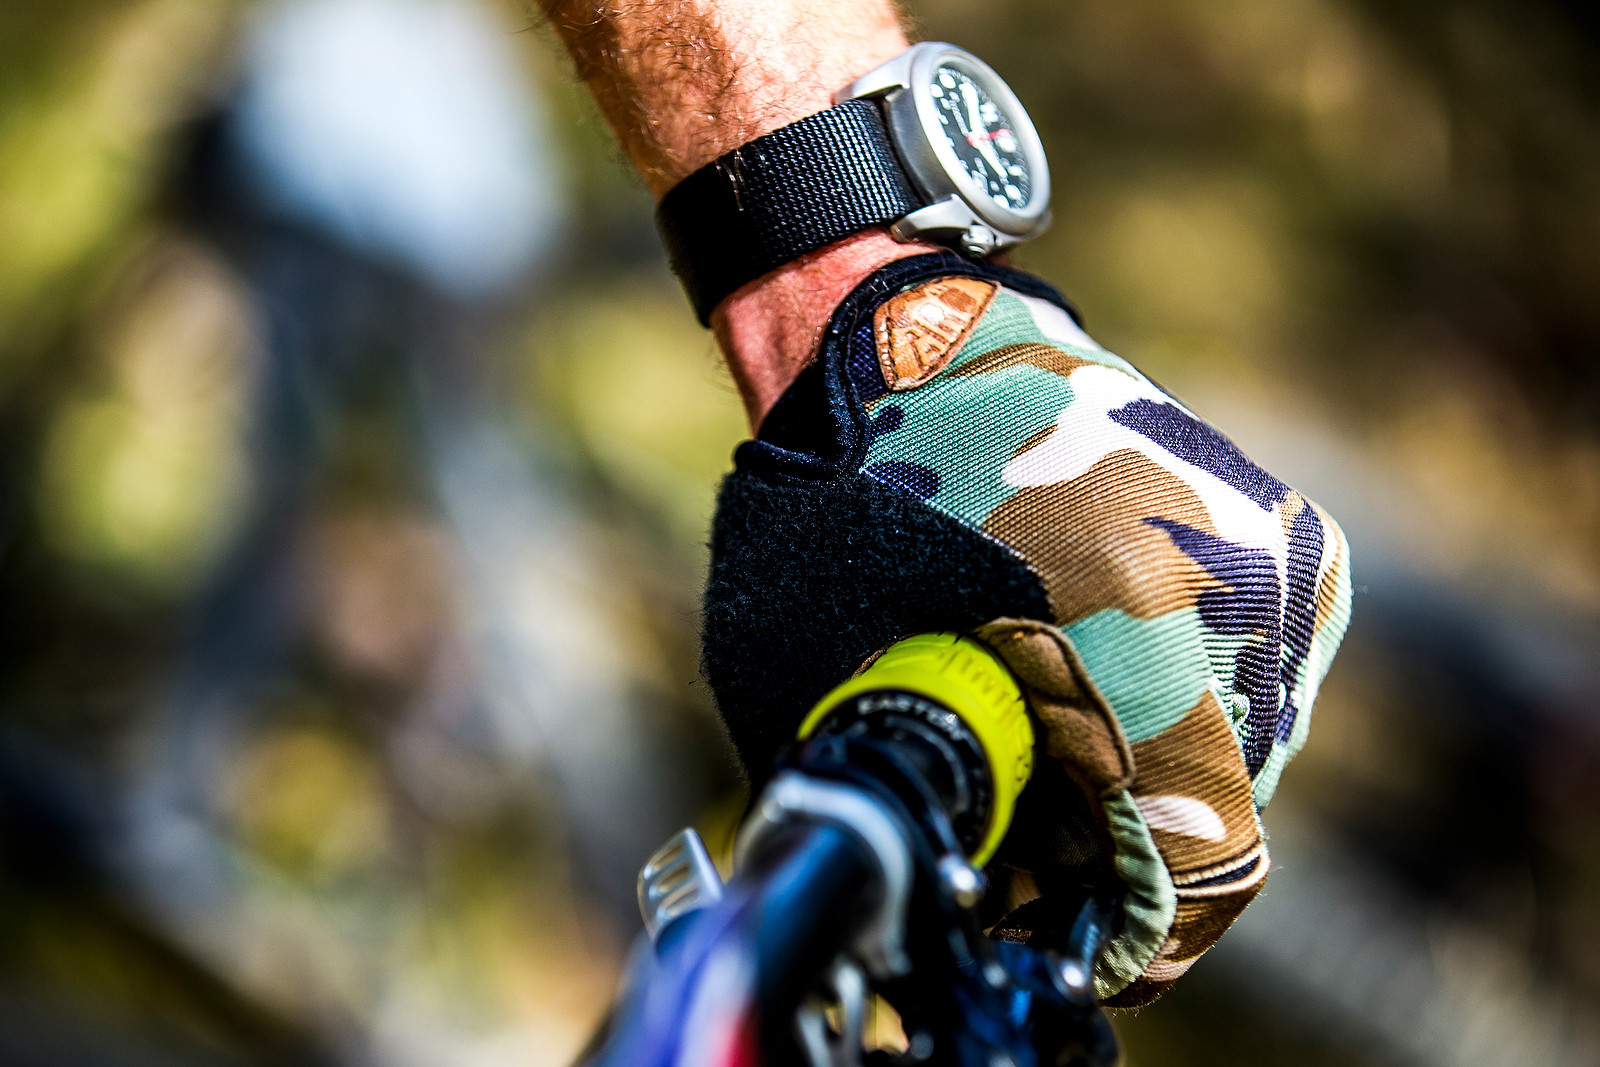 Dain's Mains (that's French for hands) - PIT BITS - Enduro World Series, Corral, Chile - Mountain Biking Pictures - Vital MTB